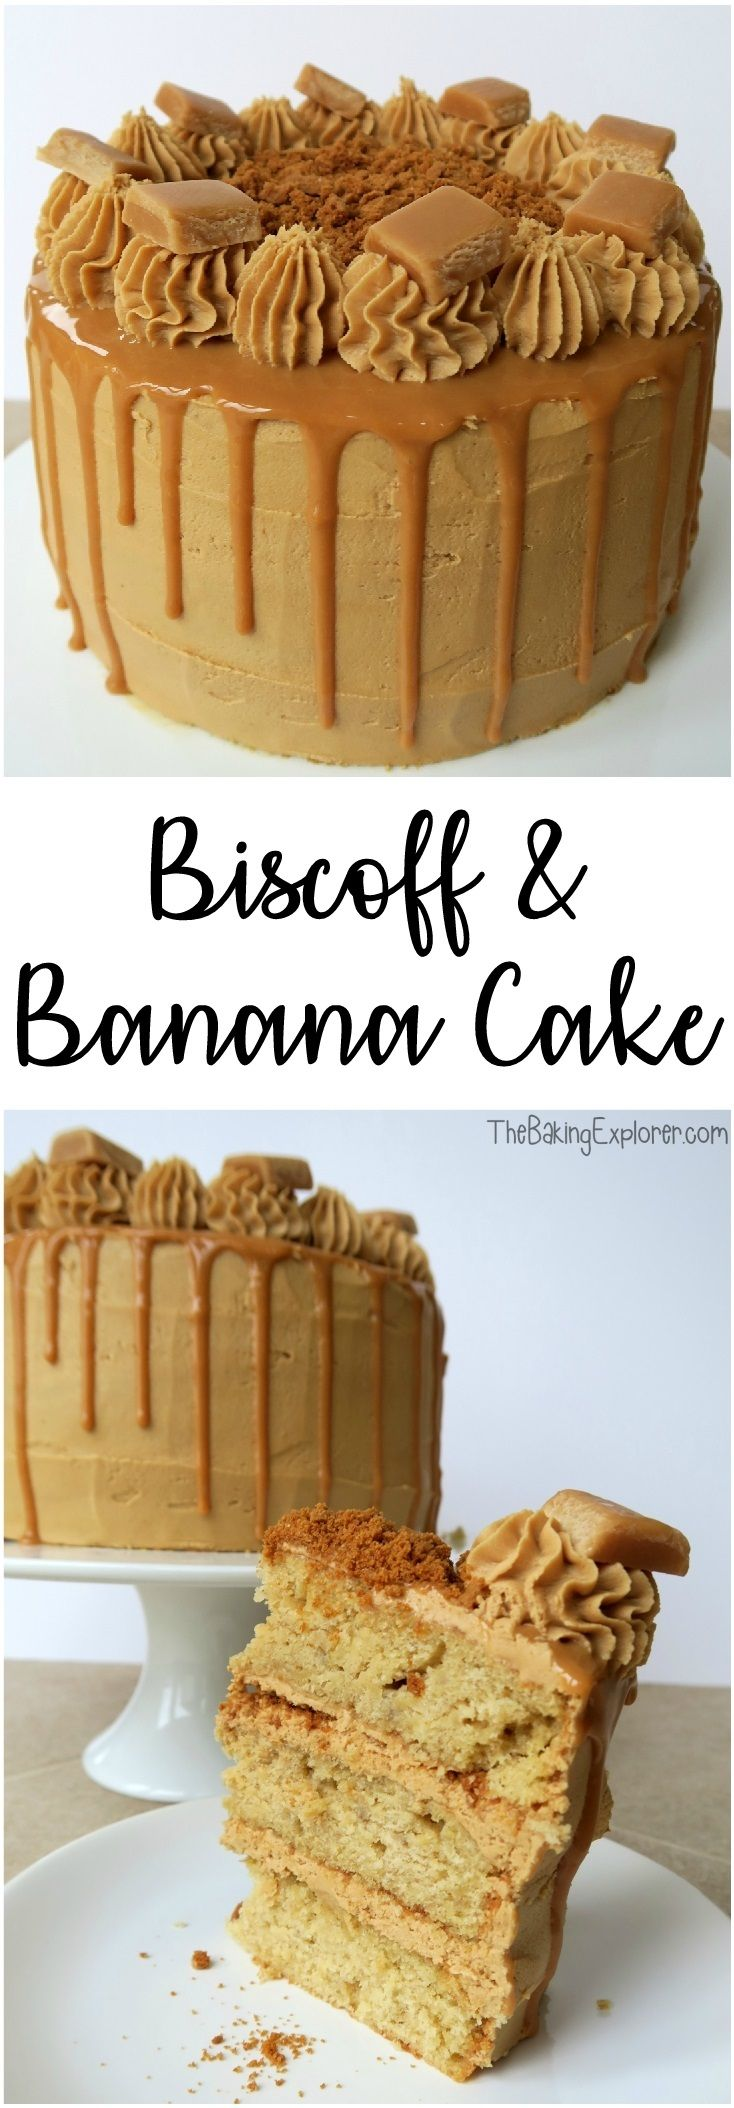 Recipe for a three layered banana sponge, filled and covered in Lotus biscoff spread buttercream, caramel sauce dripped down the sides and topped with fudge